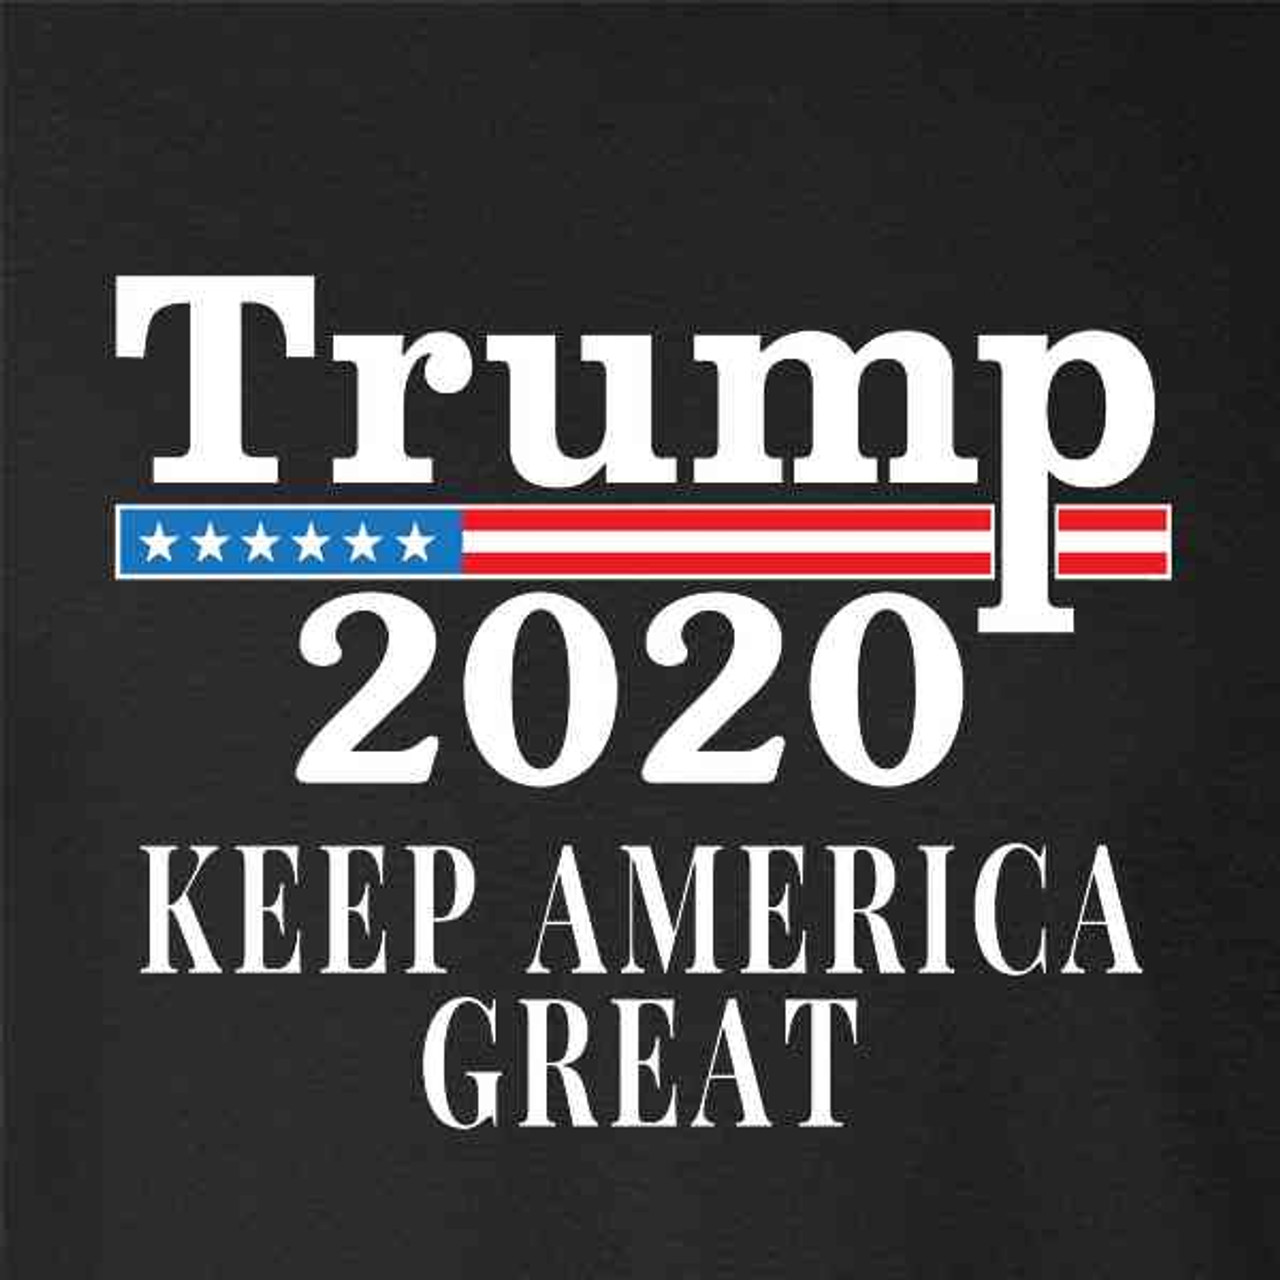 Donald Trump Keep America Great 2020 Campaign - Pop Threads